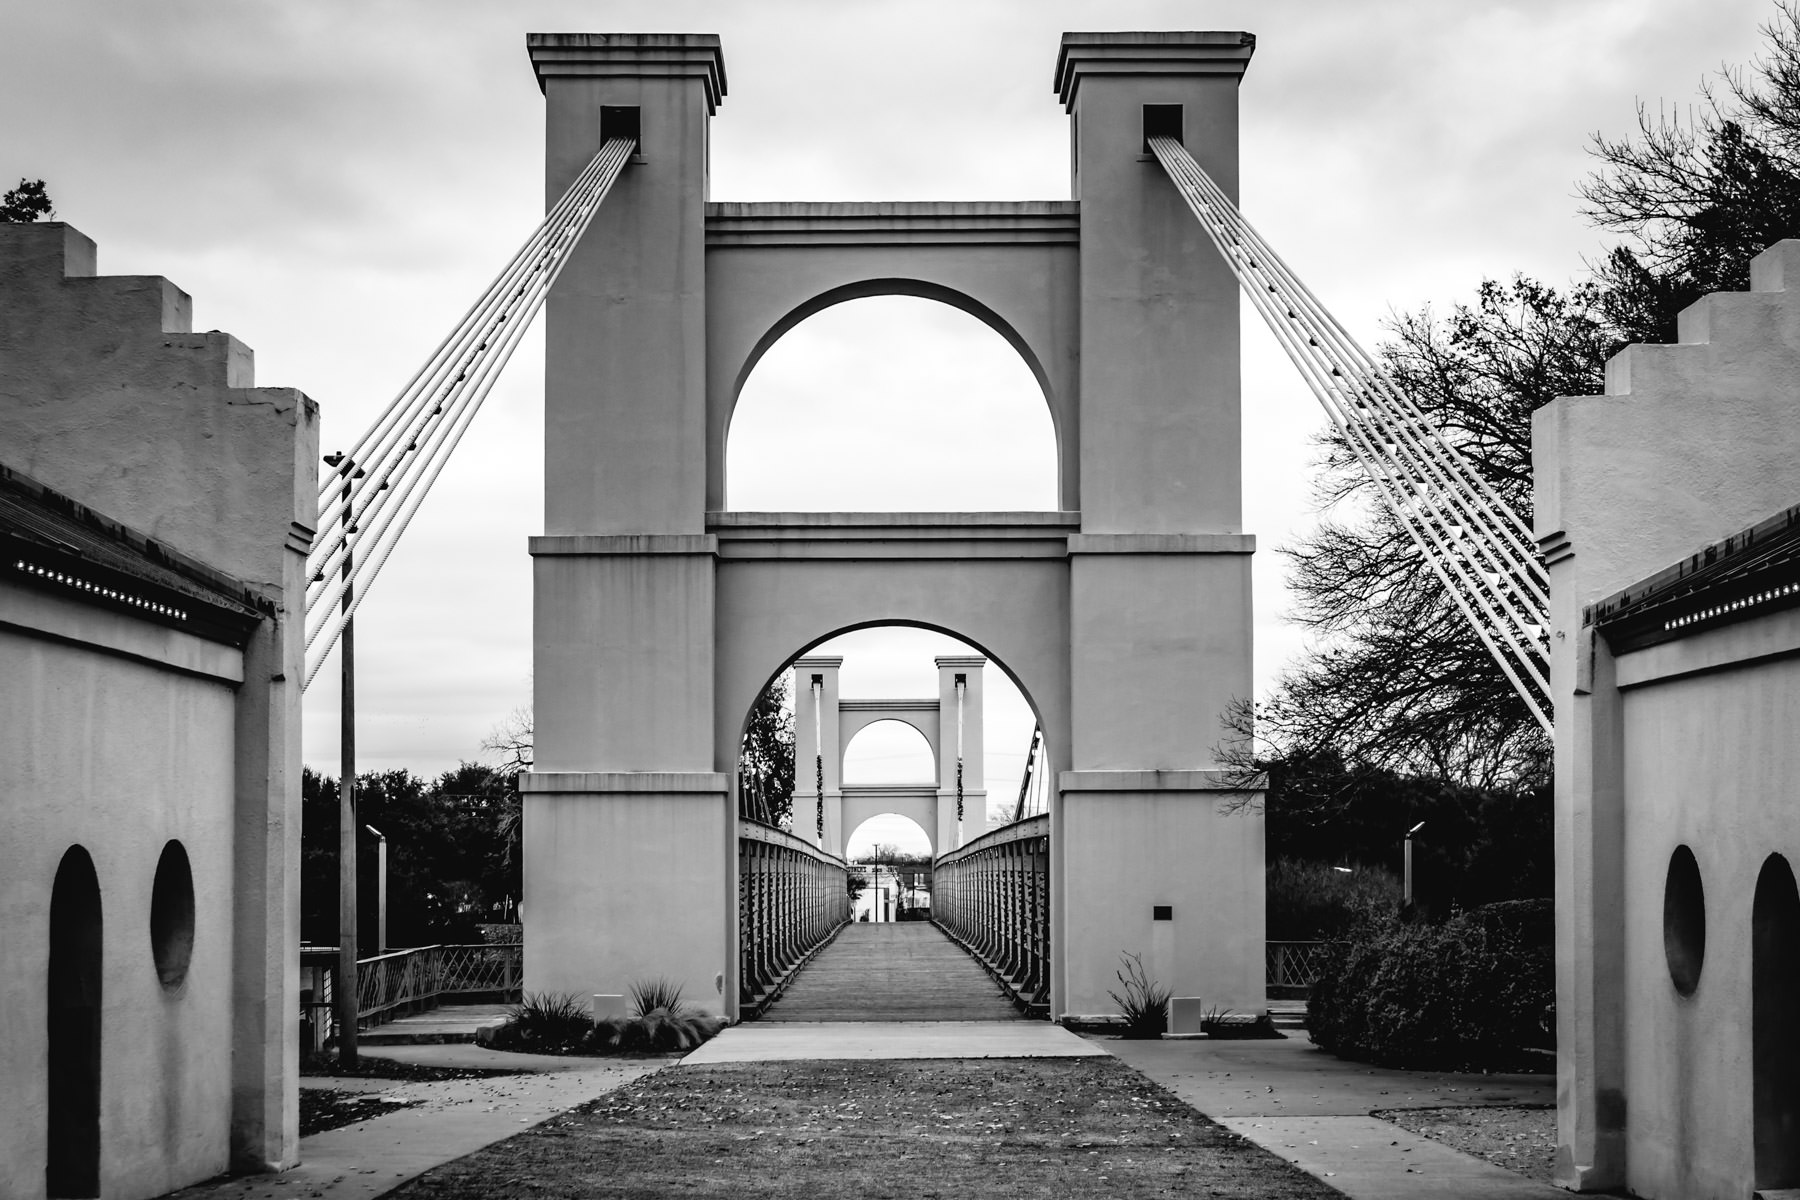 The Waco Suspension Bridge, built in 1869 and spanning 475 feet, reaches over the Brazos River in Waco, Texas.